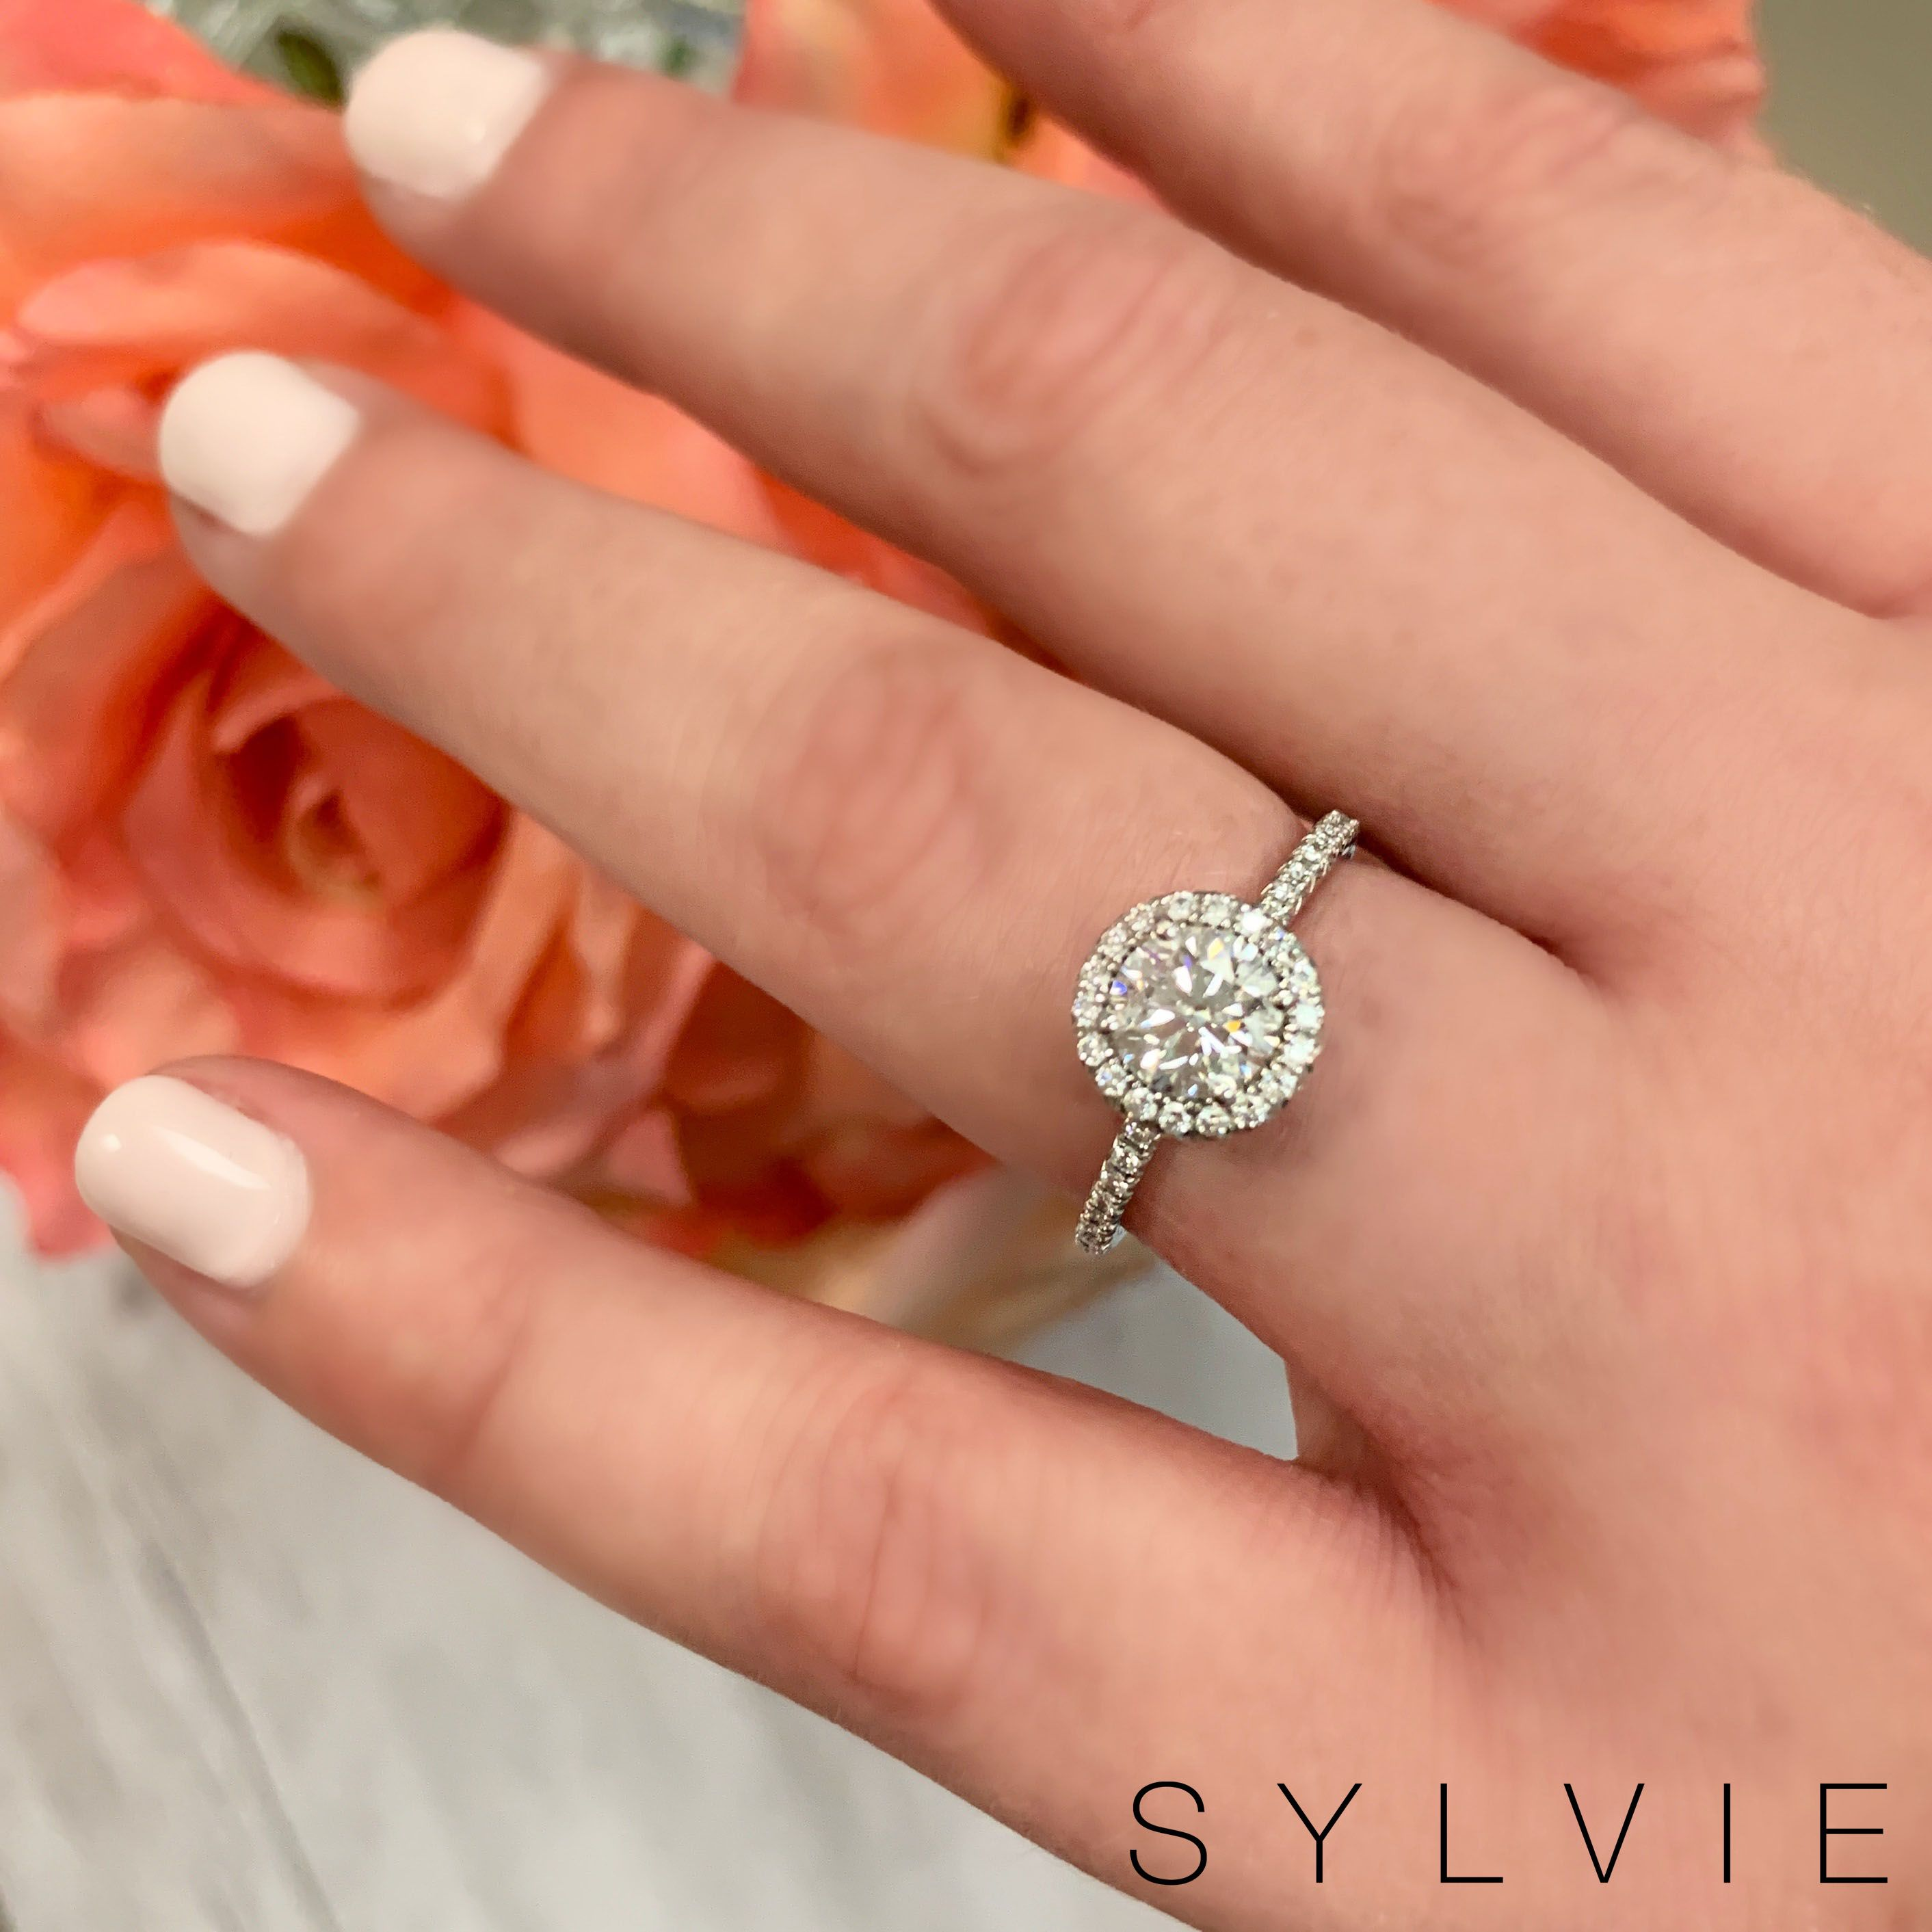 Pin On Unique Engagement Rings